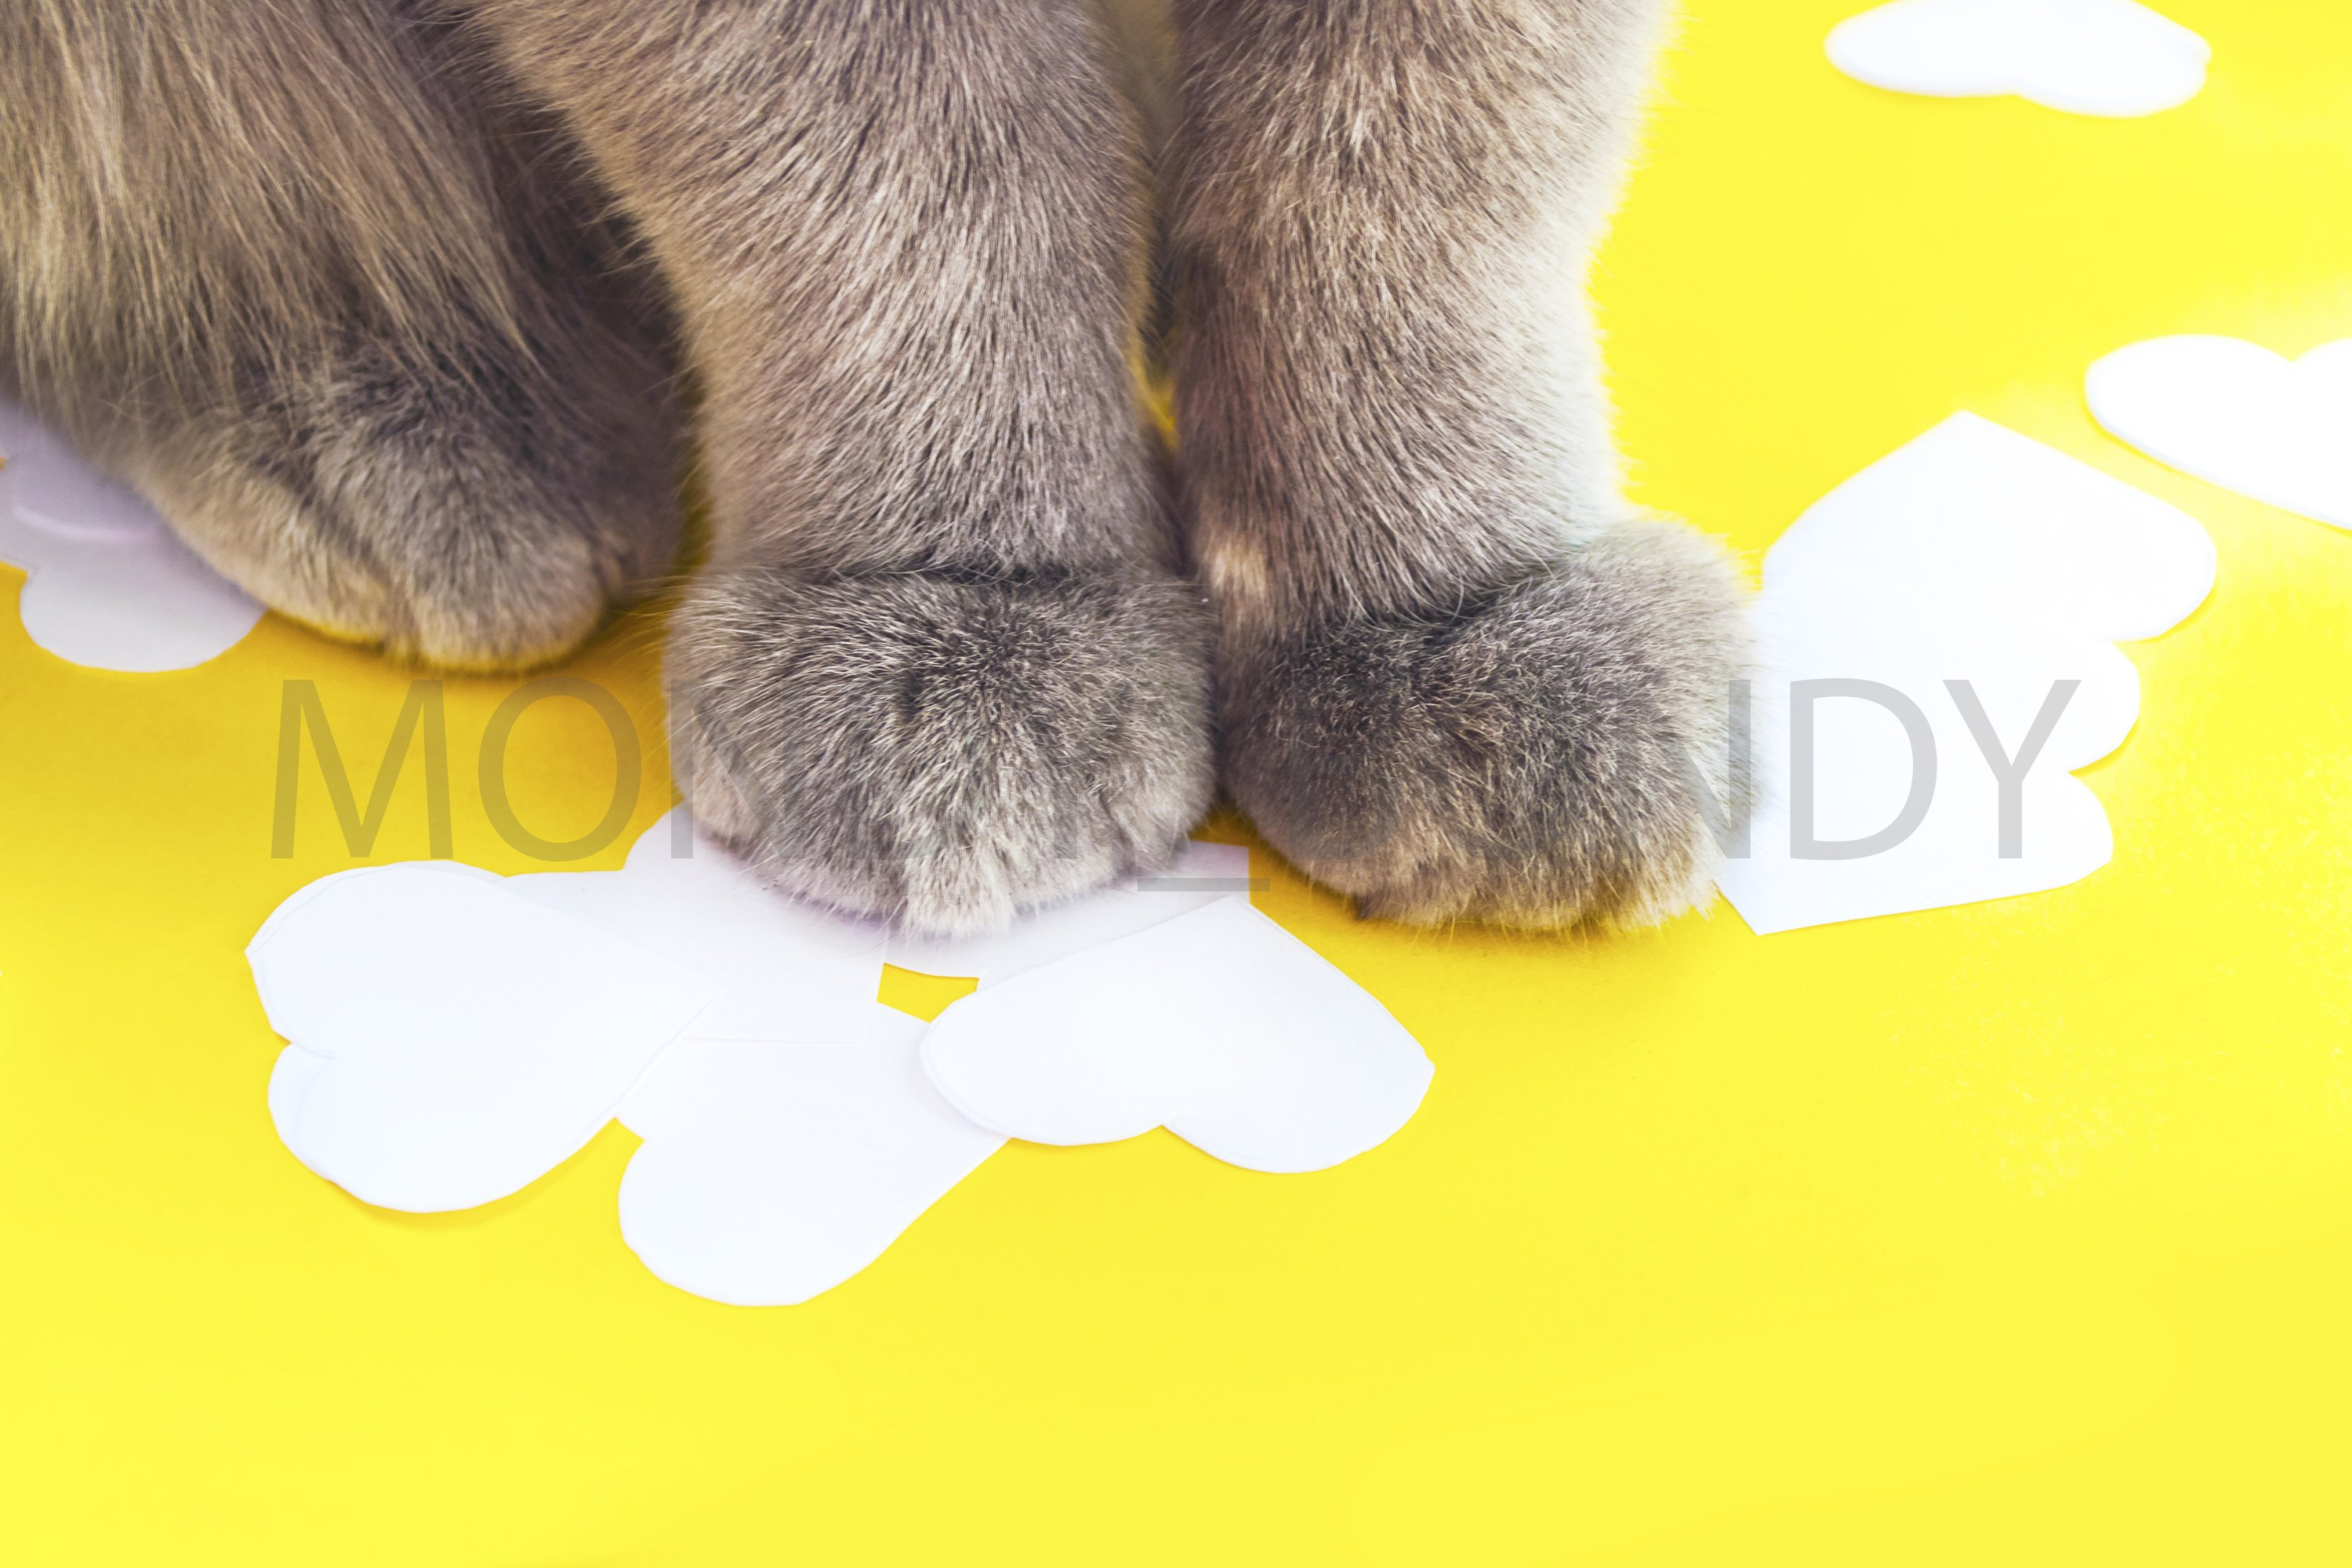 cat legs on a yellow background close-up example image 1